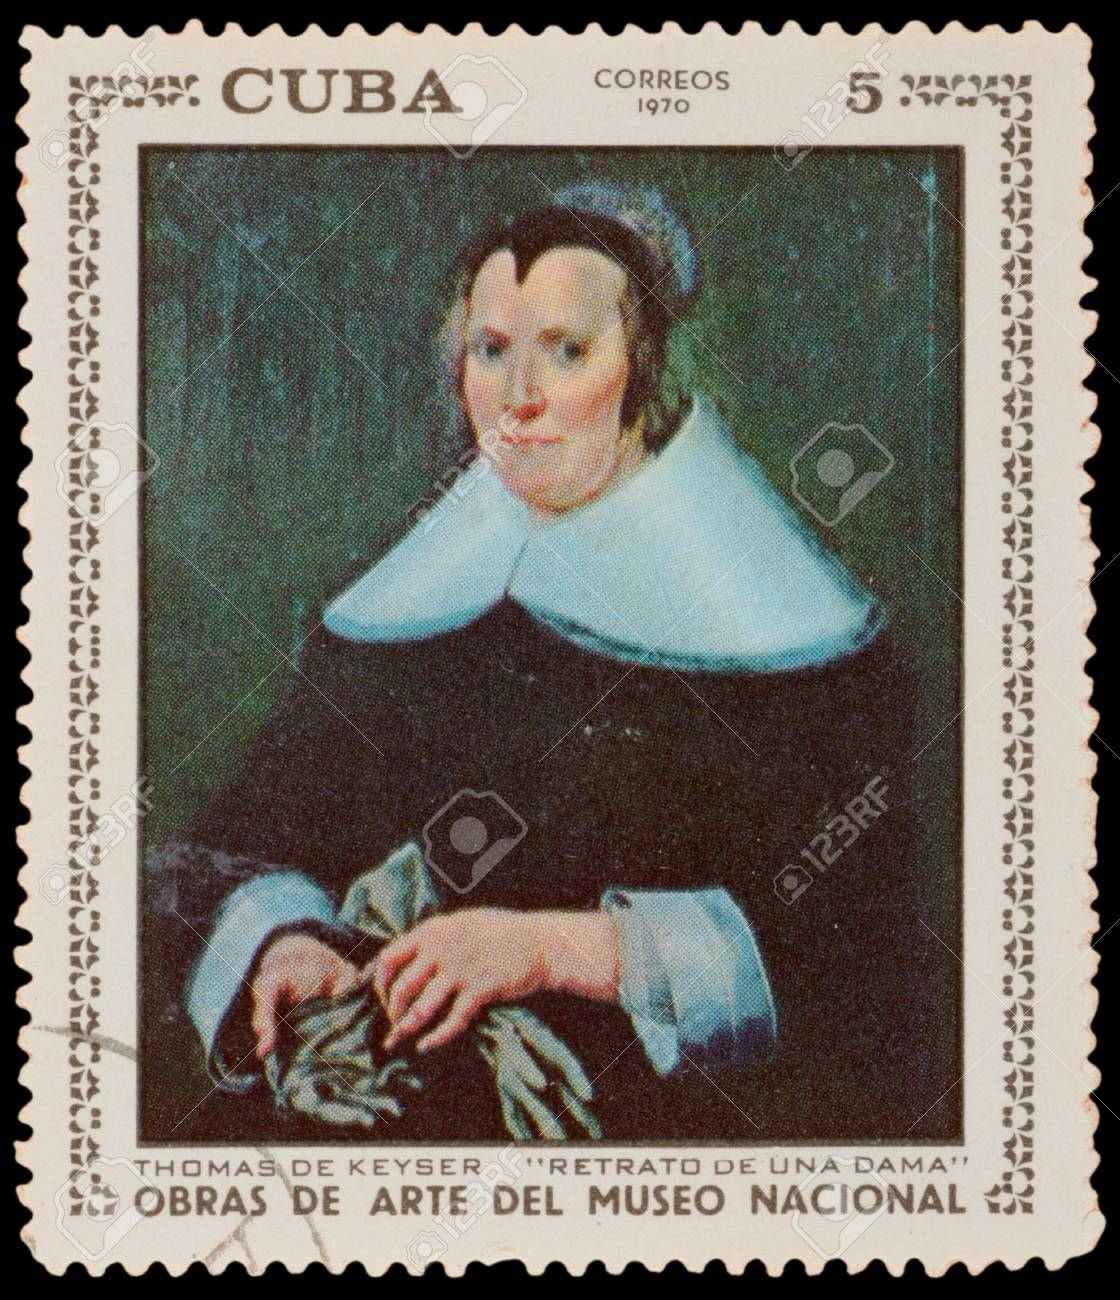 CUBA - CIRCA 1970: A stamp printed in the CUBA, shows